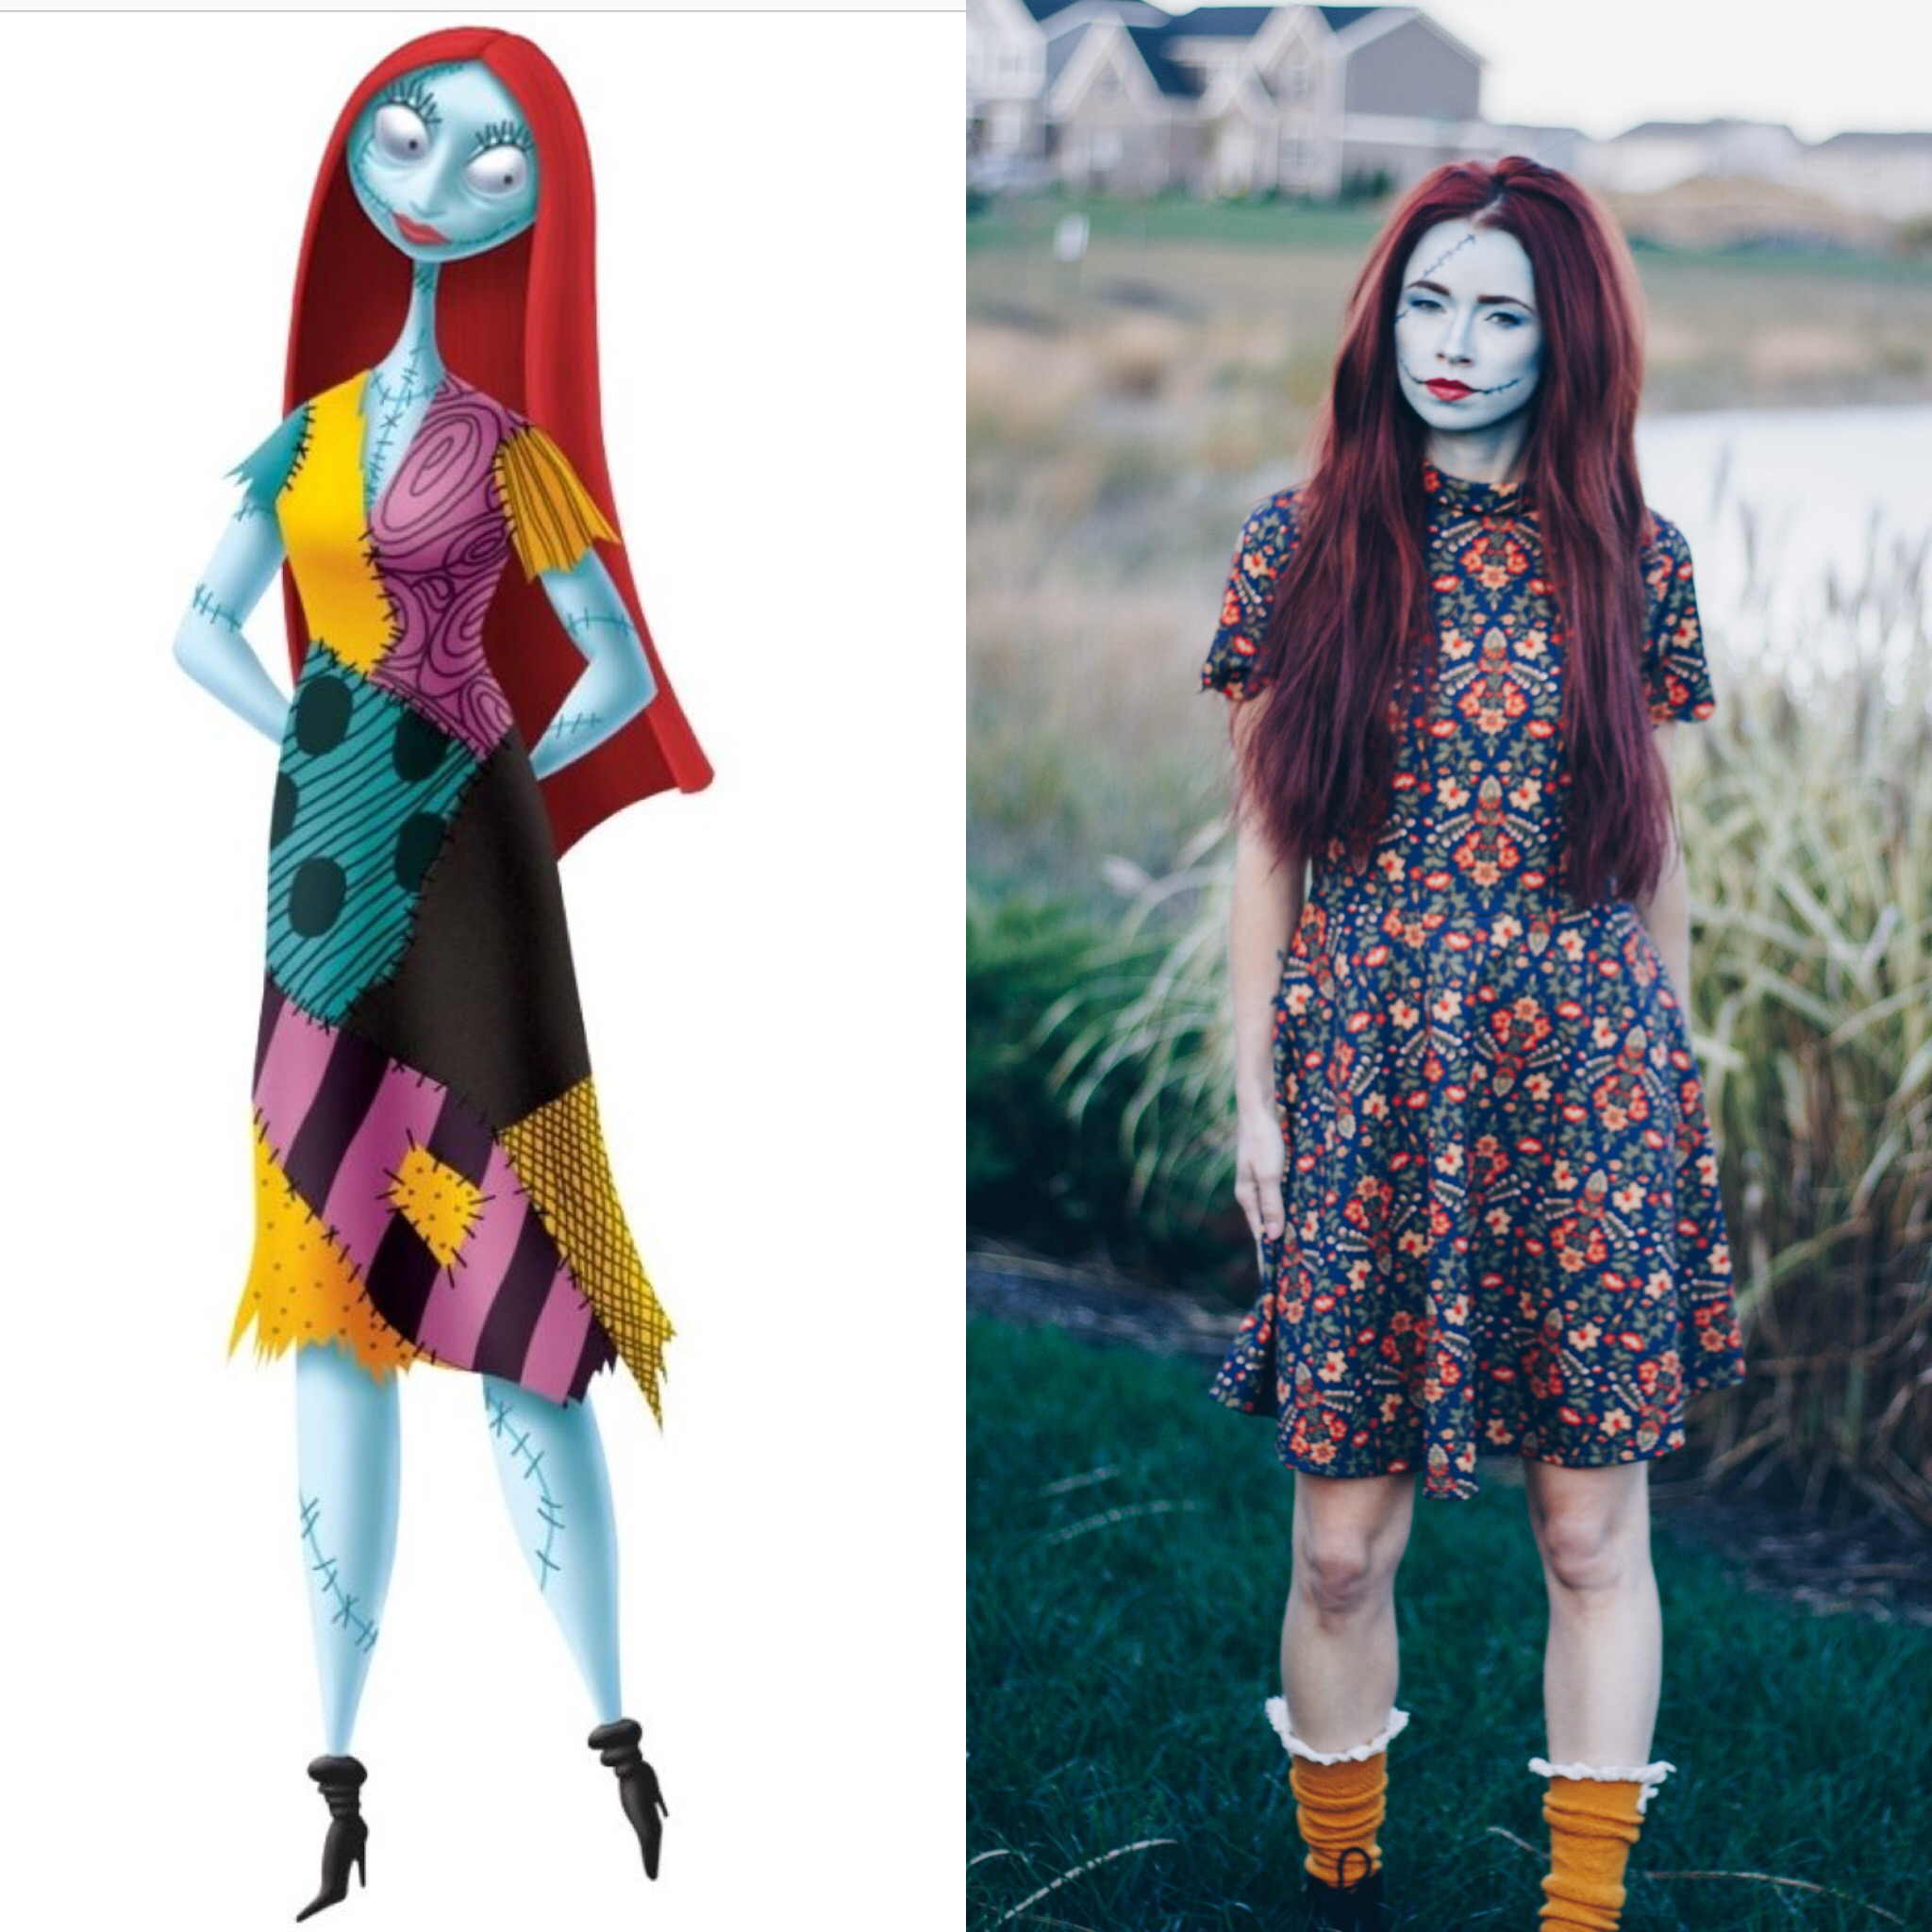 DIY Halloween Costume Ideas featured by top Indianapolis life and style blog, Trendy in Indy : Sally of Nightmare Before Christmas